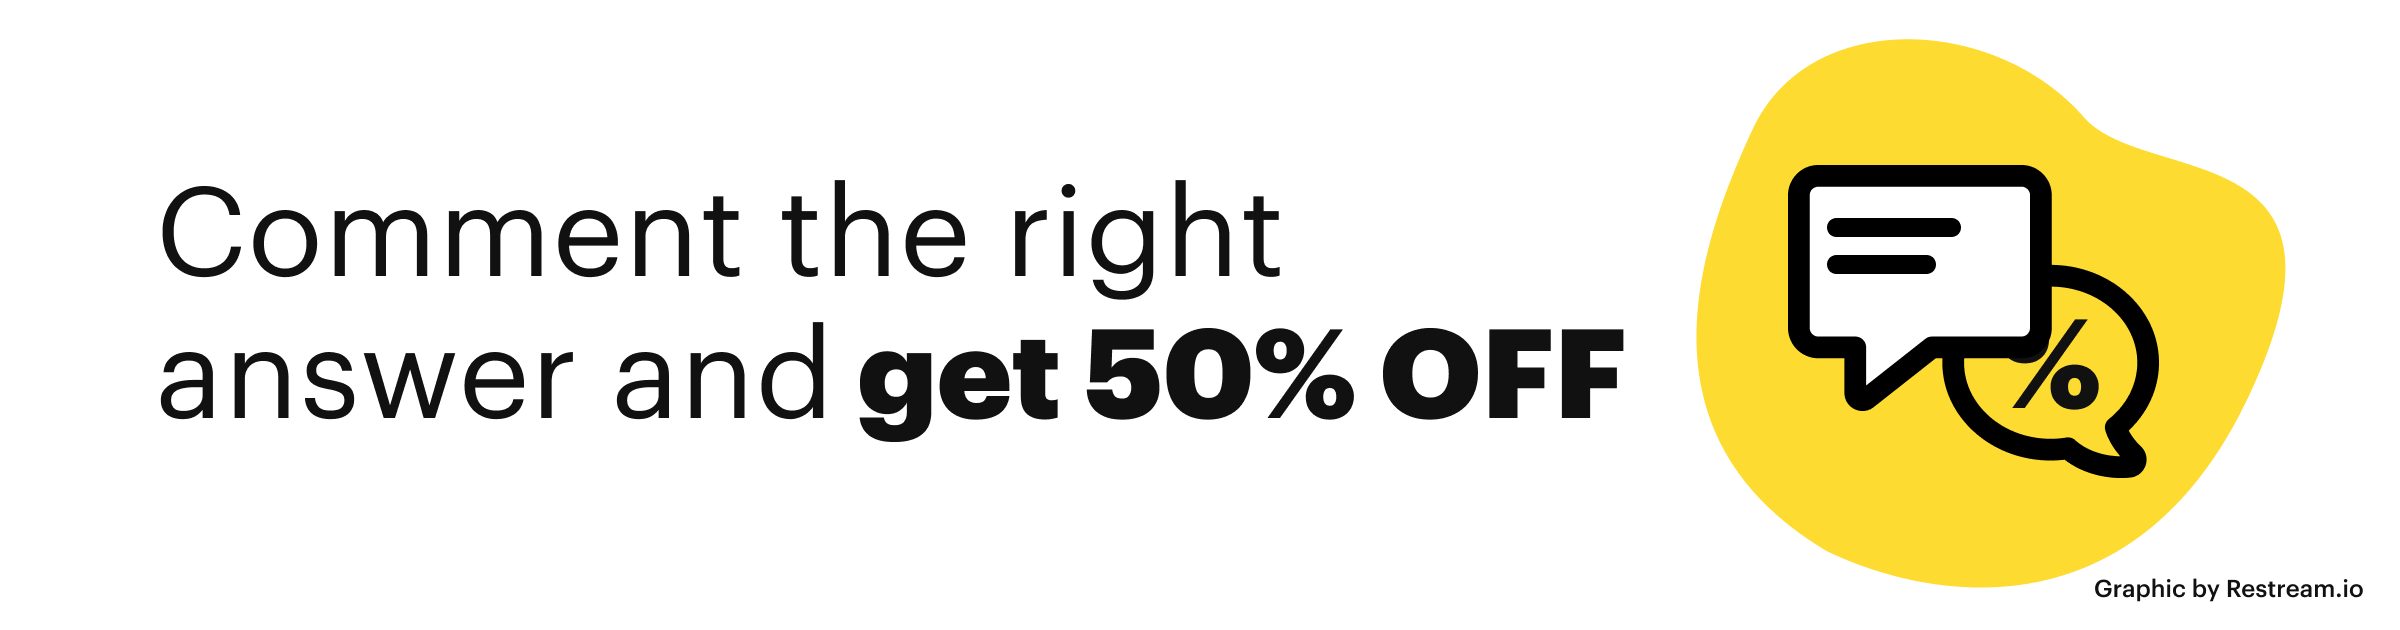 Create an eye-catching offer - comment the right answer and get 50% off